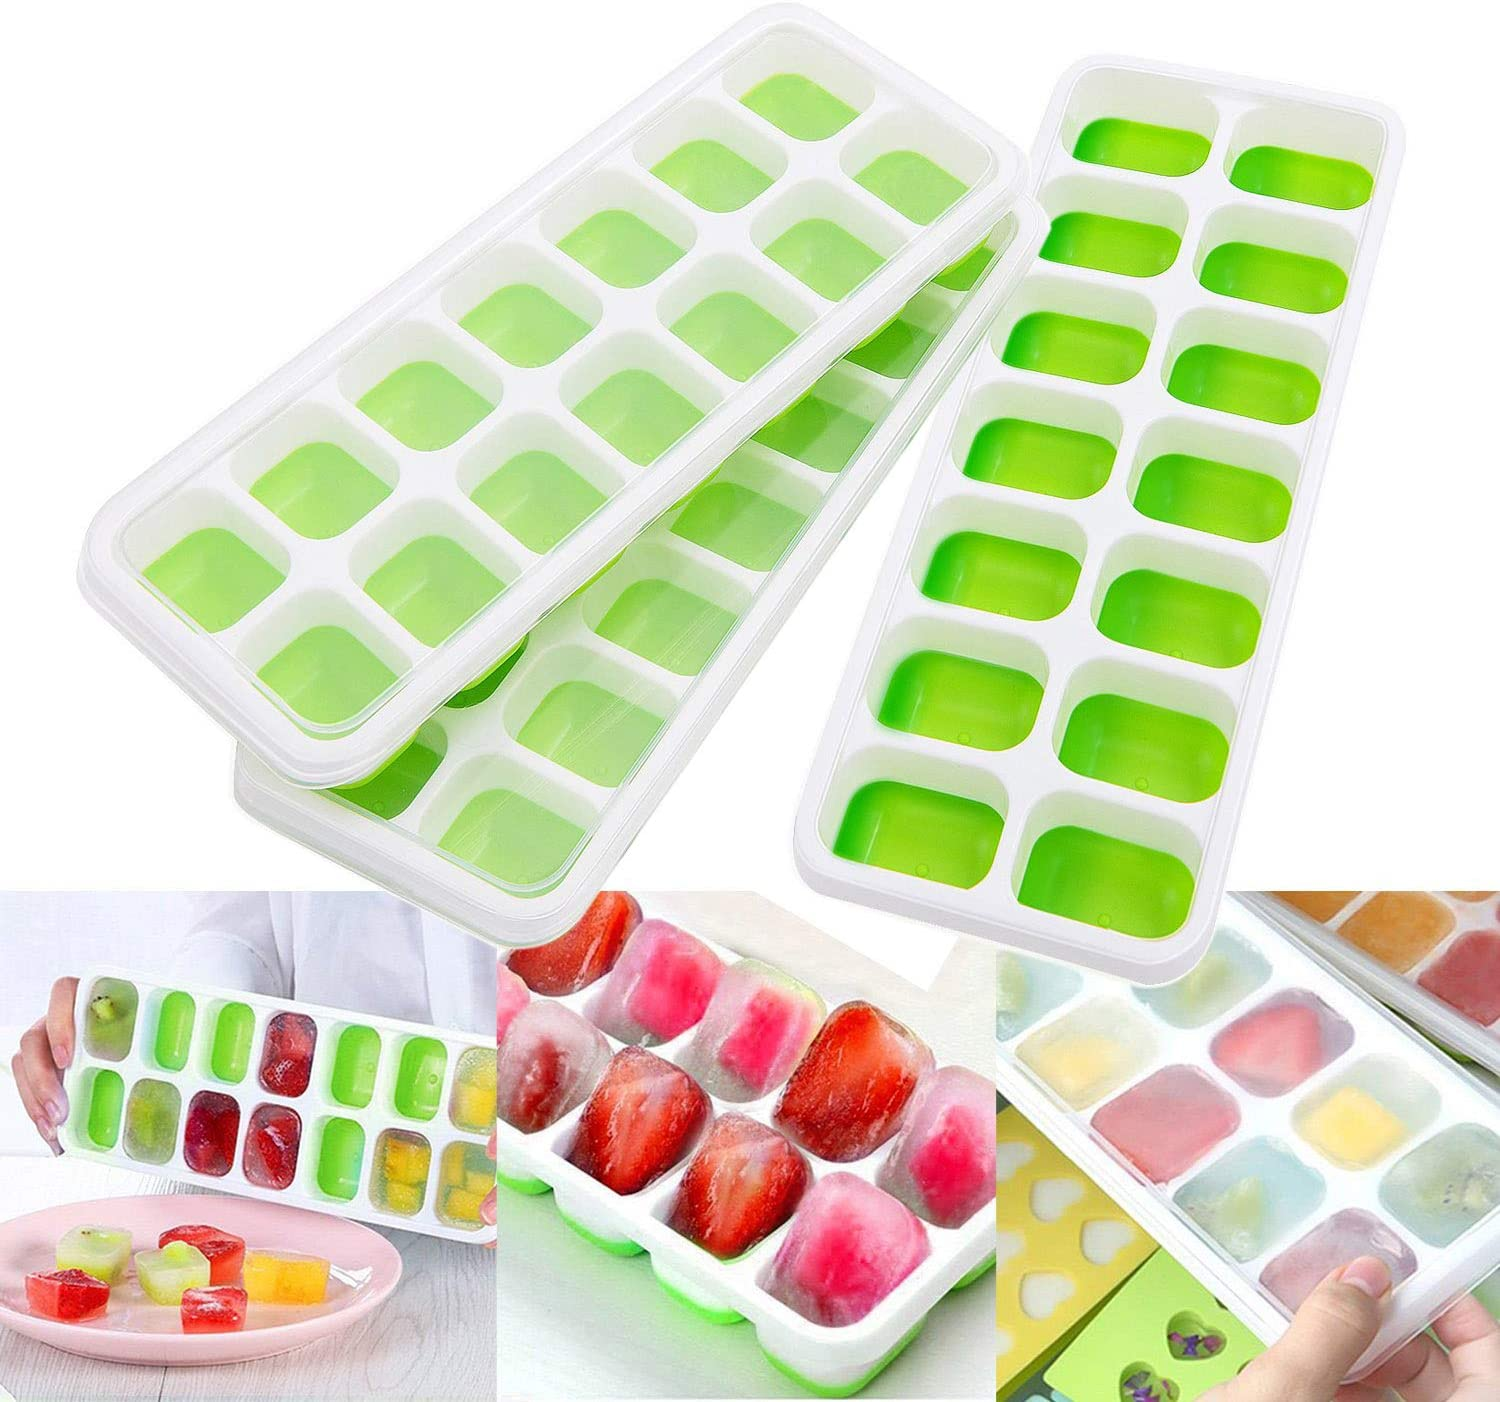 Ice Cube Trays Silicone with Lid, Silicone Ice Cube Tray with 42 Ice Cube Molds for Home Ice Cream Wine Fruits, Stackable Reusable and BPA Free, Pack of 3